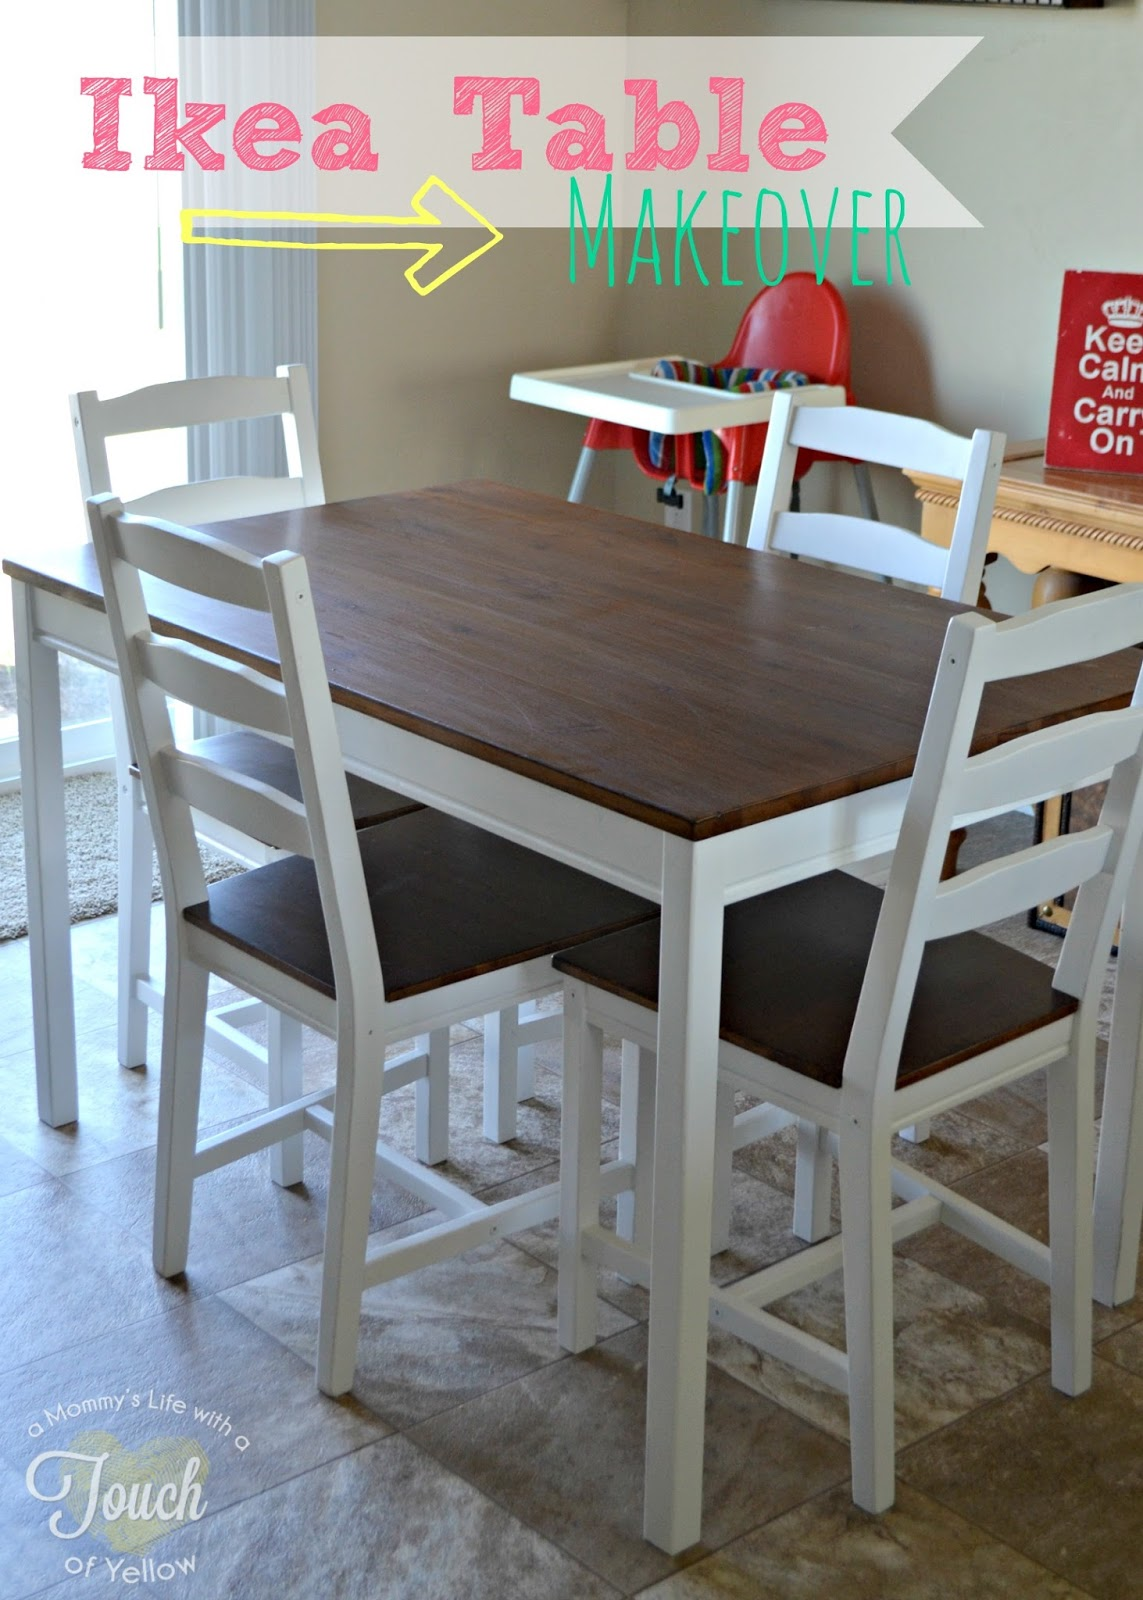 Ikea Kitchen Table Makeover {Tutorial} Part 98